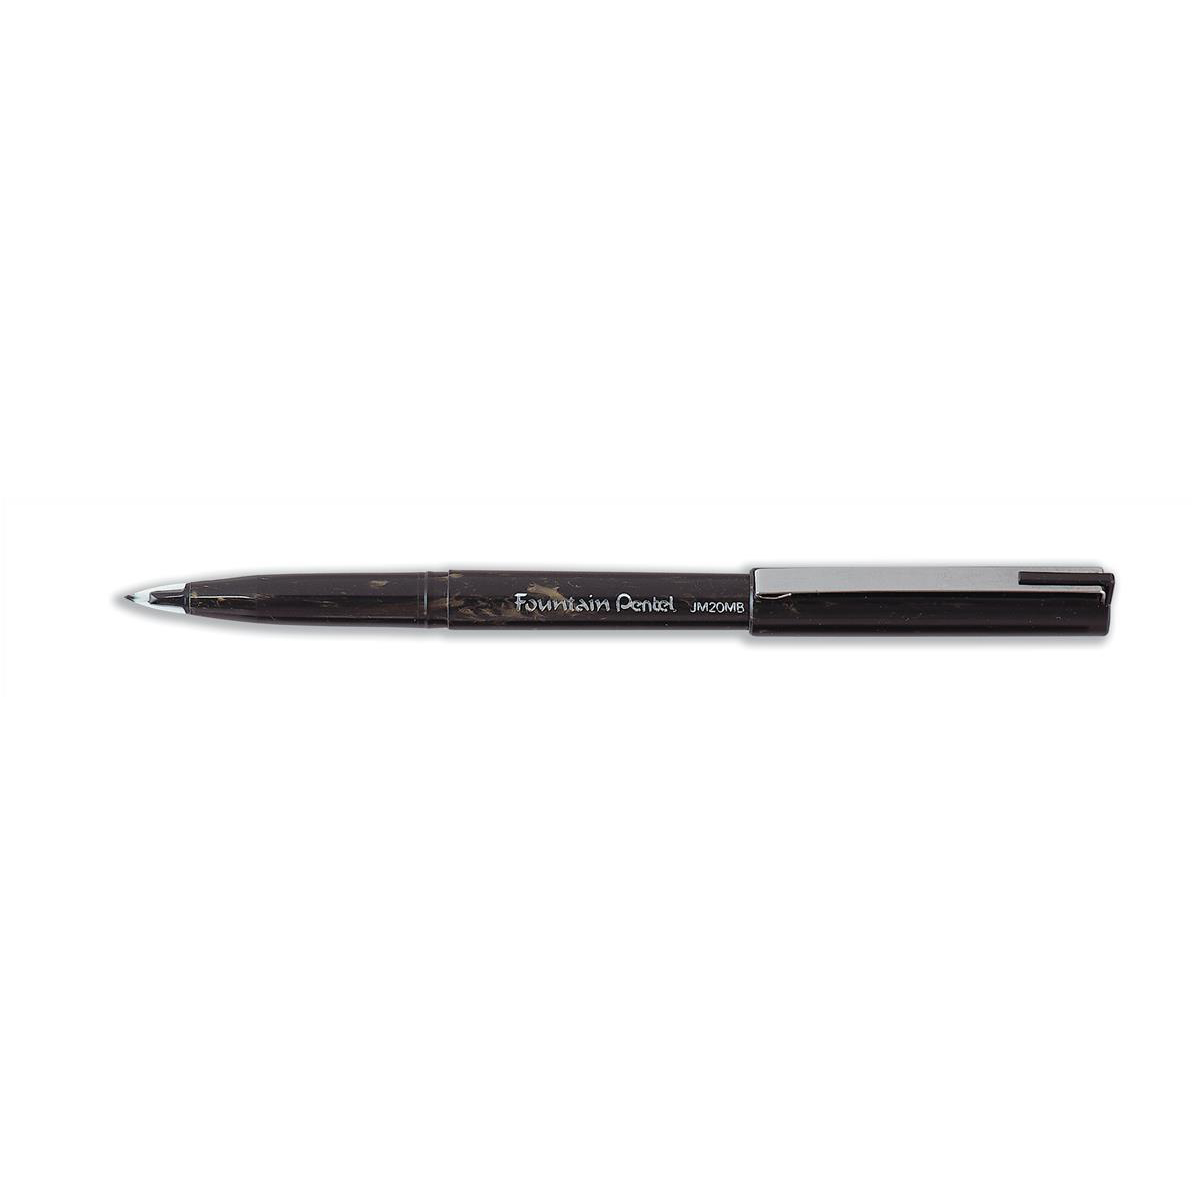 Pentel JM20 Fountain Pen Disposable Dual-sided Fibre-Nib 0.3-0.4mm Line Black Ref JM20MB-A Pack 12